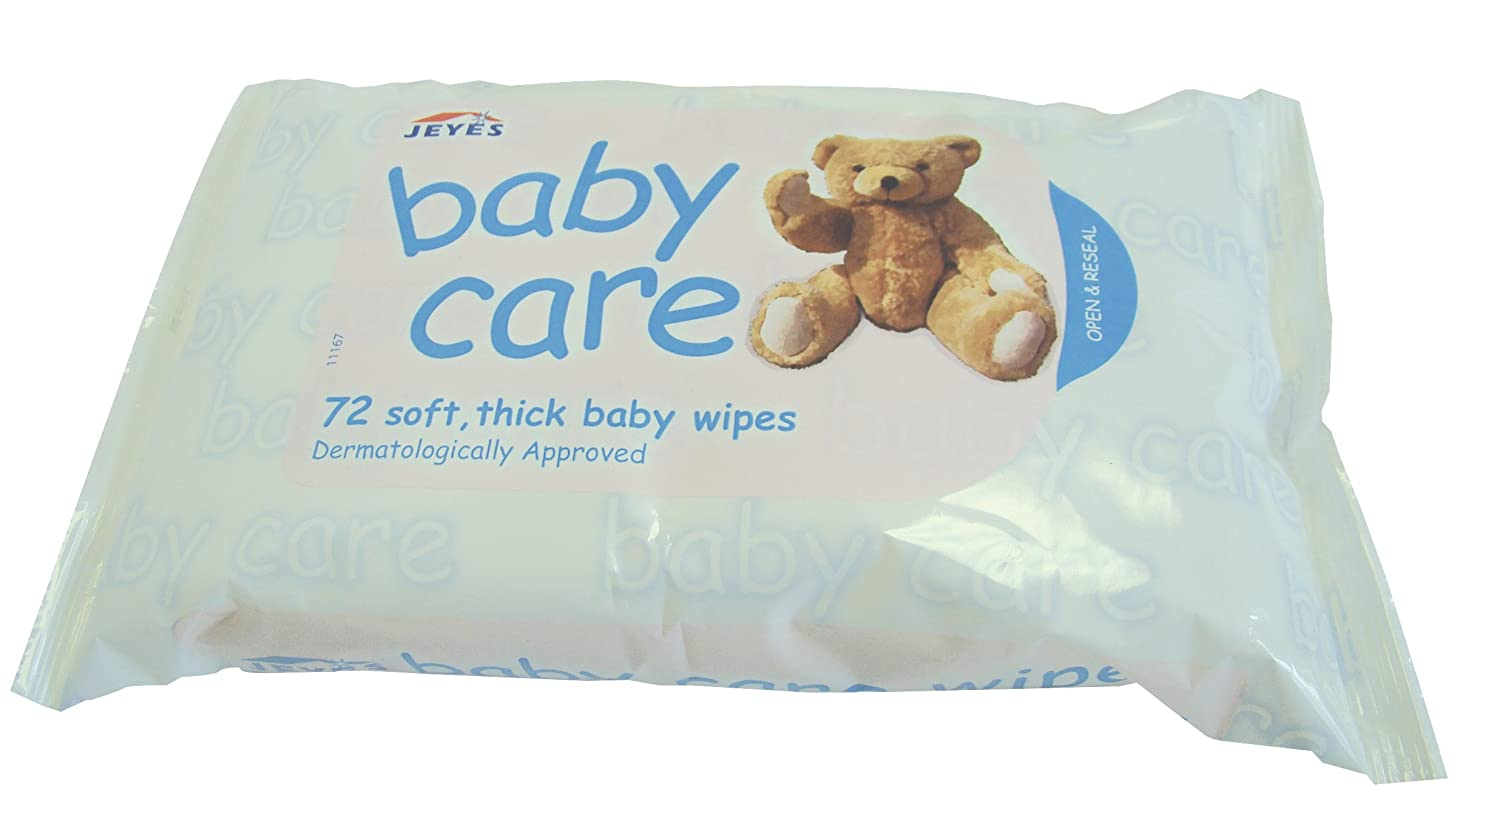 Jeyes Baby Care Extra Thick Wipes - 72 per Pack - Case of 12